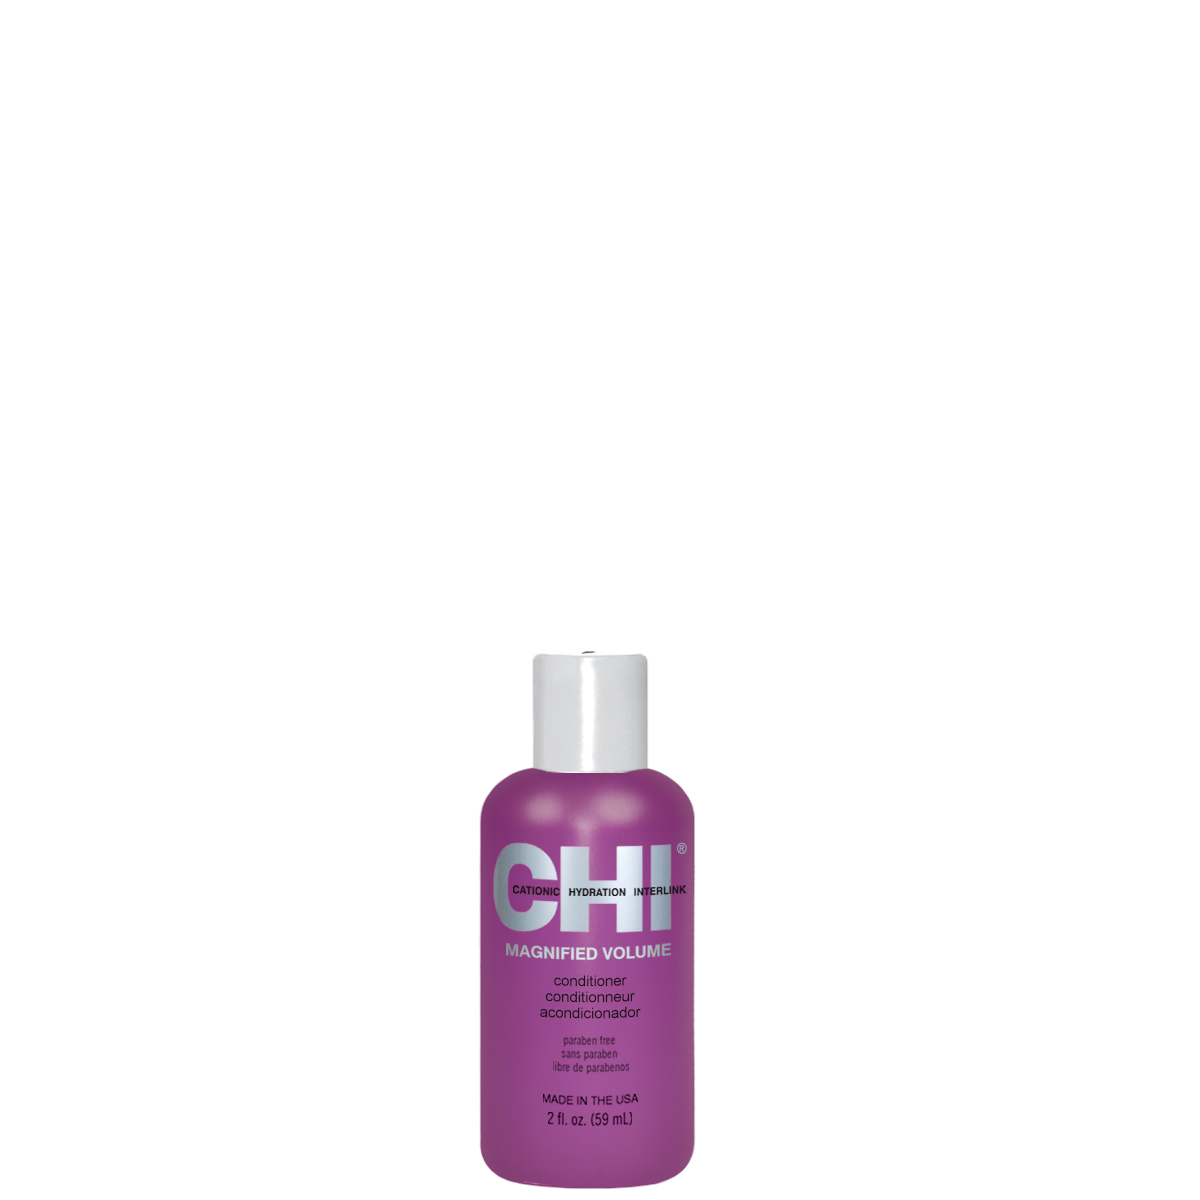 CHI-Magnified-Volume-Conditioner-2floz-New2